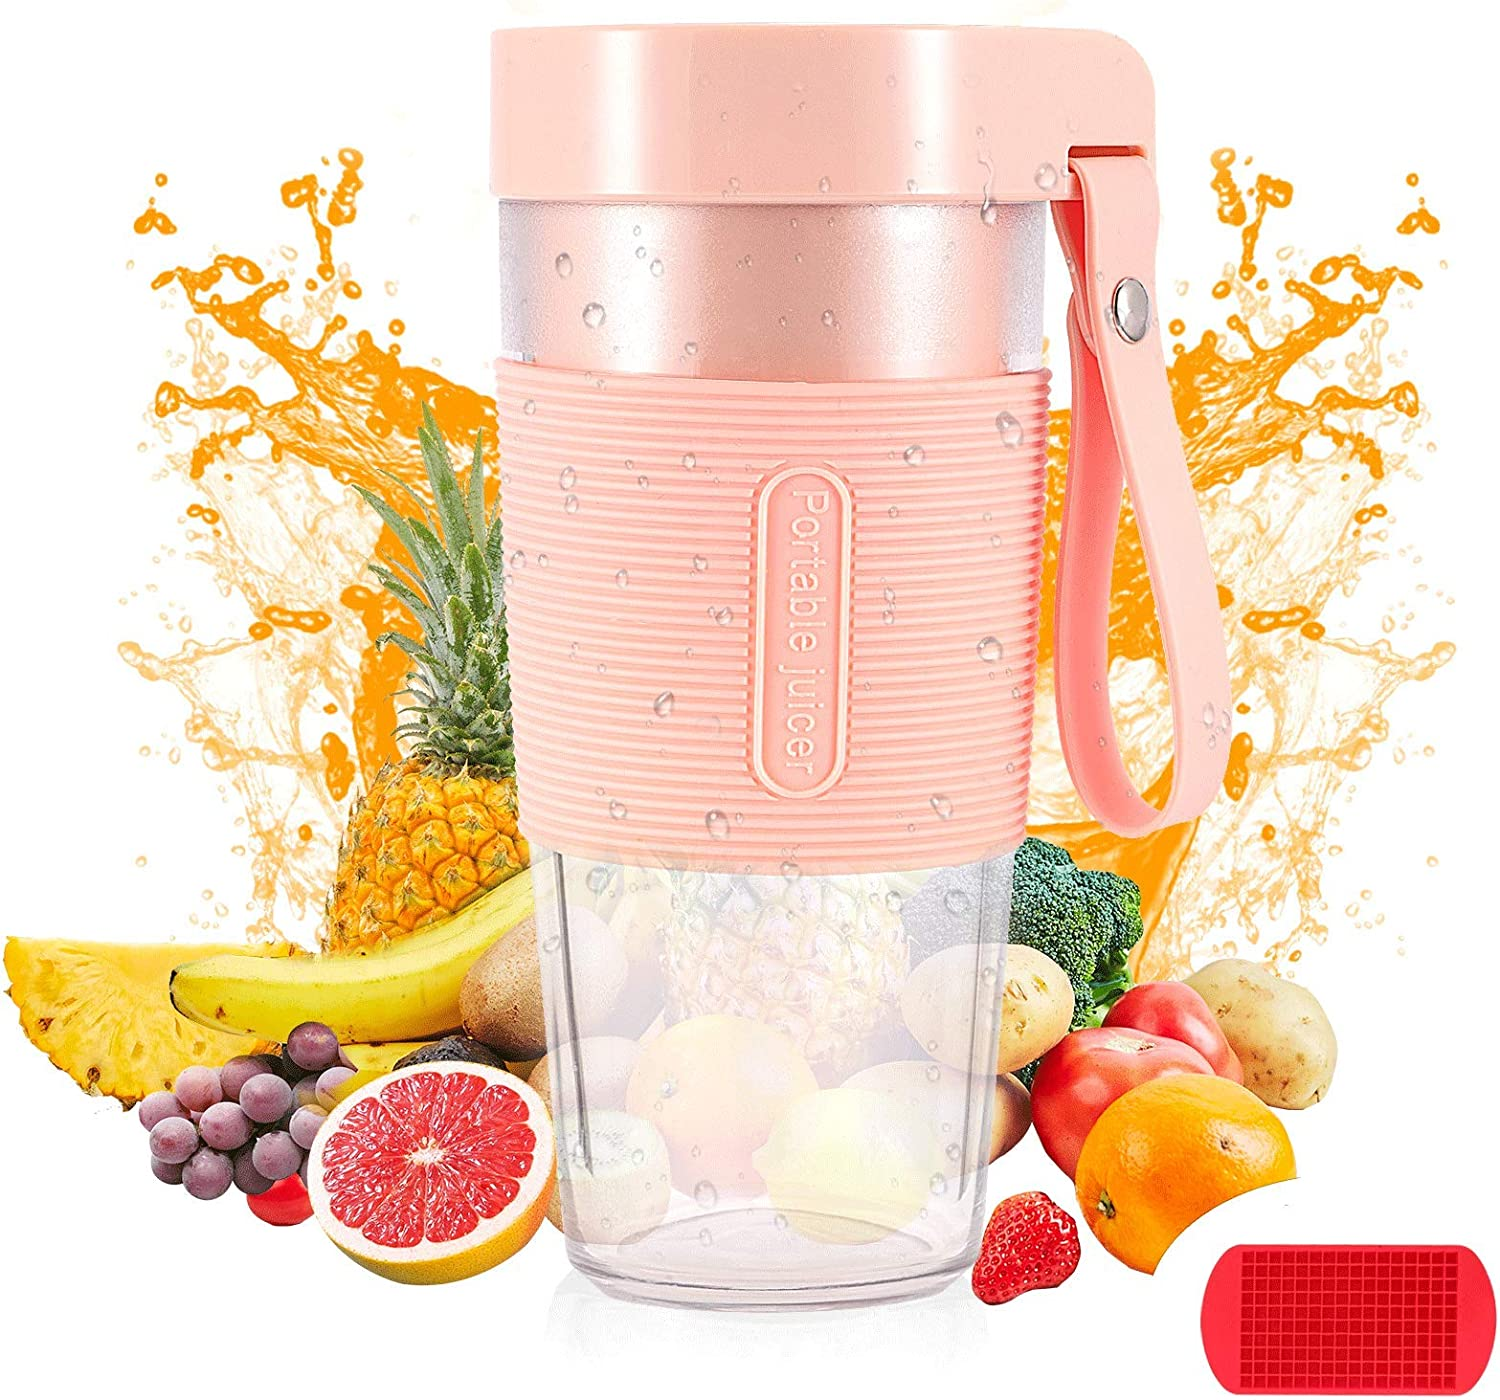 Portable Blender, Personal Blender for Smoothies and Shakes, 12OZ Mini Blender with Rechargeable USB, Baby Food Maker Made with BPA Free Material, MIYAJOY Juicer Cup Smoothies Cup Small Blender for Kitchen, Office, Sports, Travel, Outdoors. With Ice Cube Tray Free Gift.